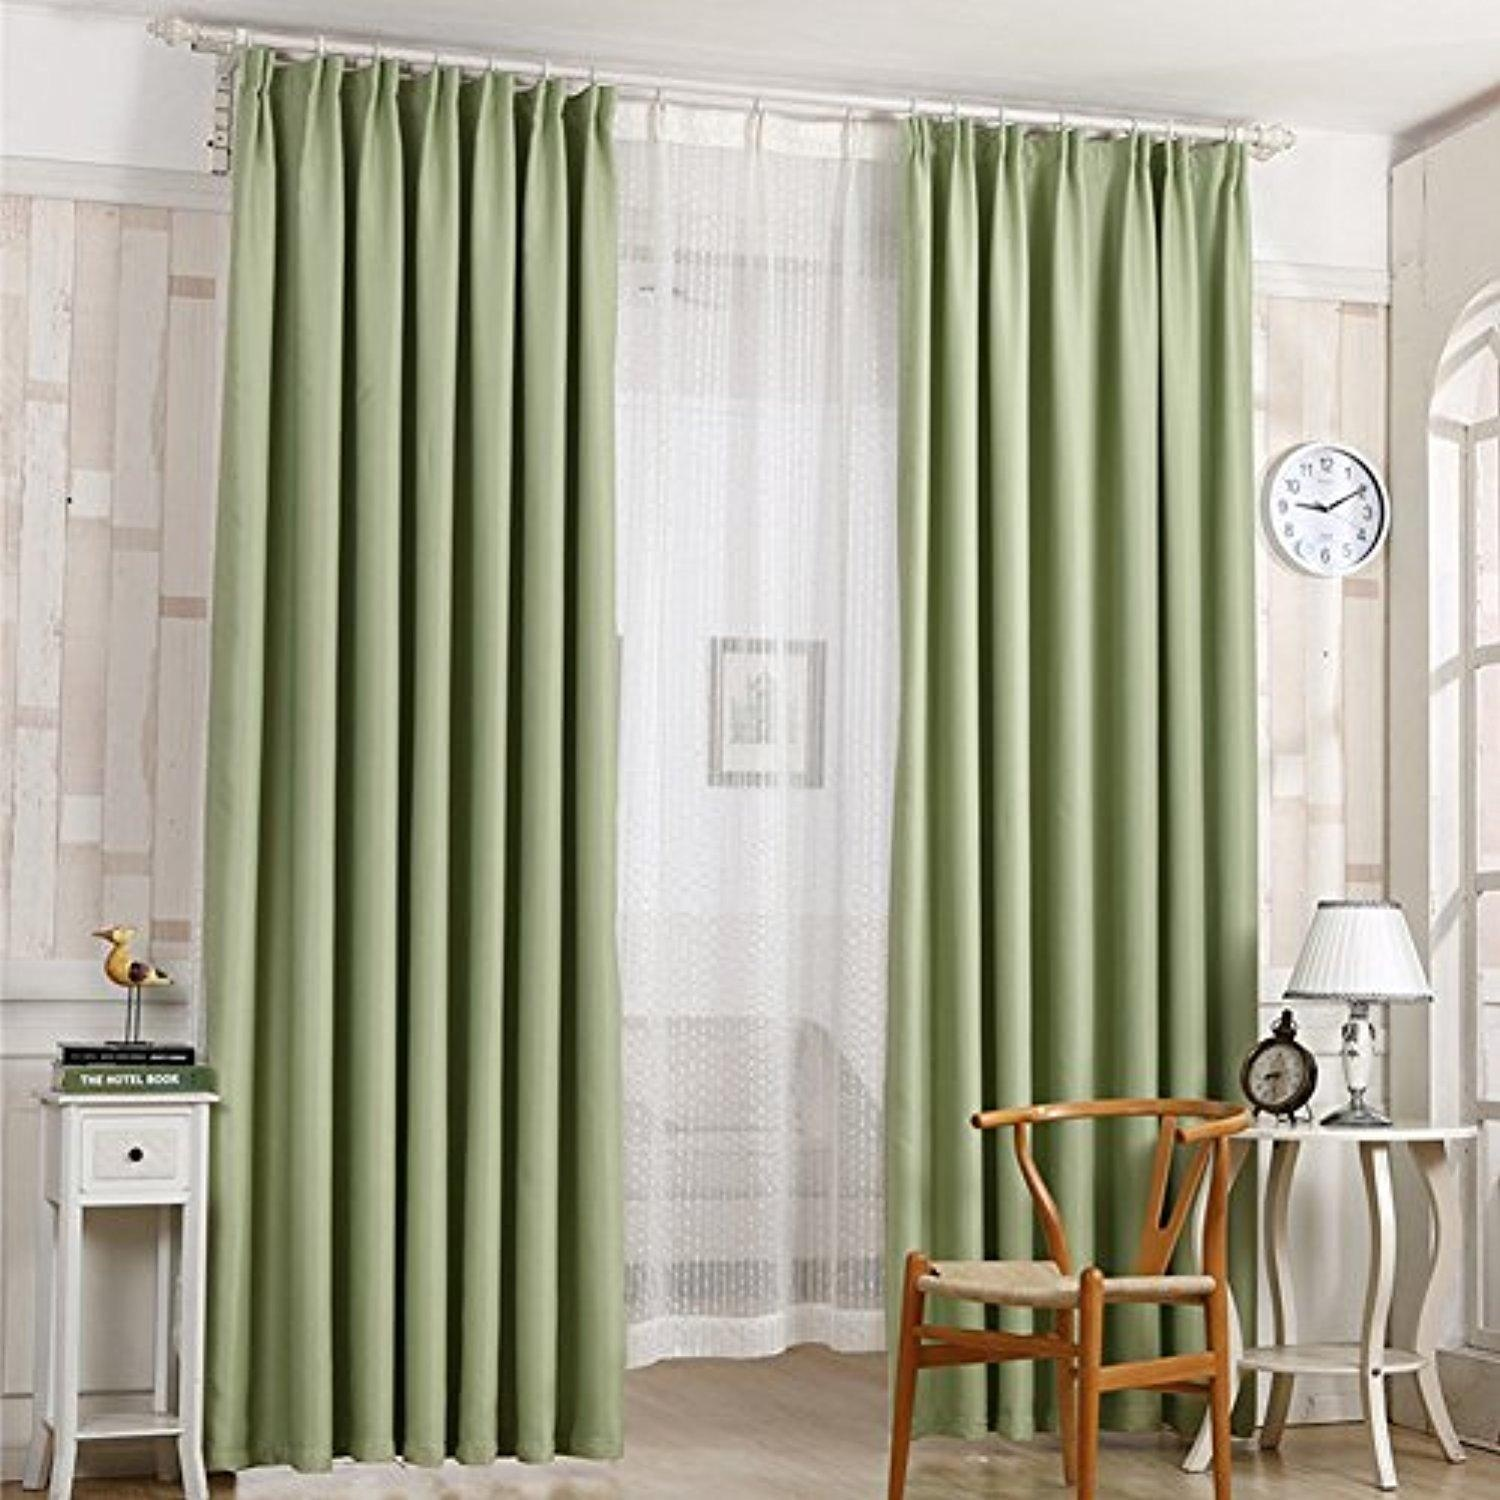 Thermal Insulated Curtains | Curtains for Cold Weather | Curtains Thermal Insulation